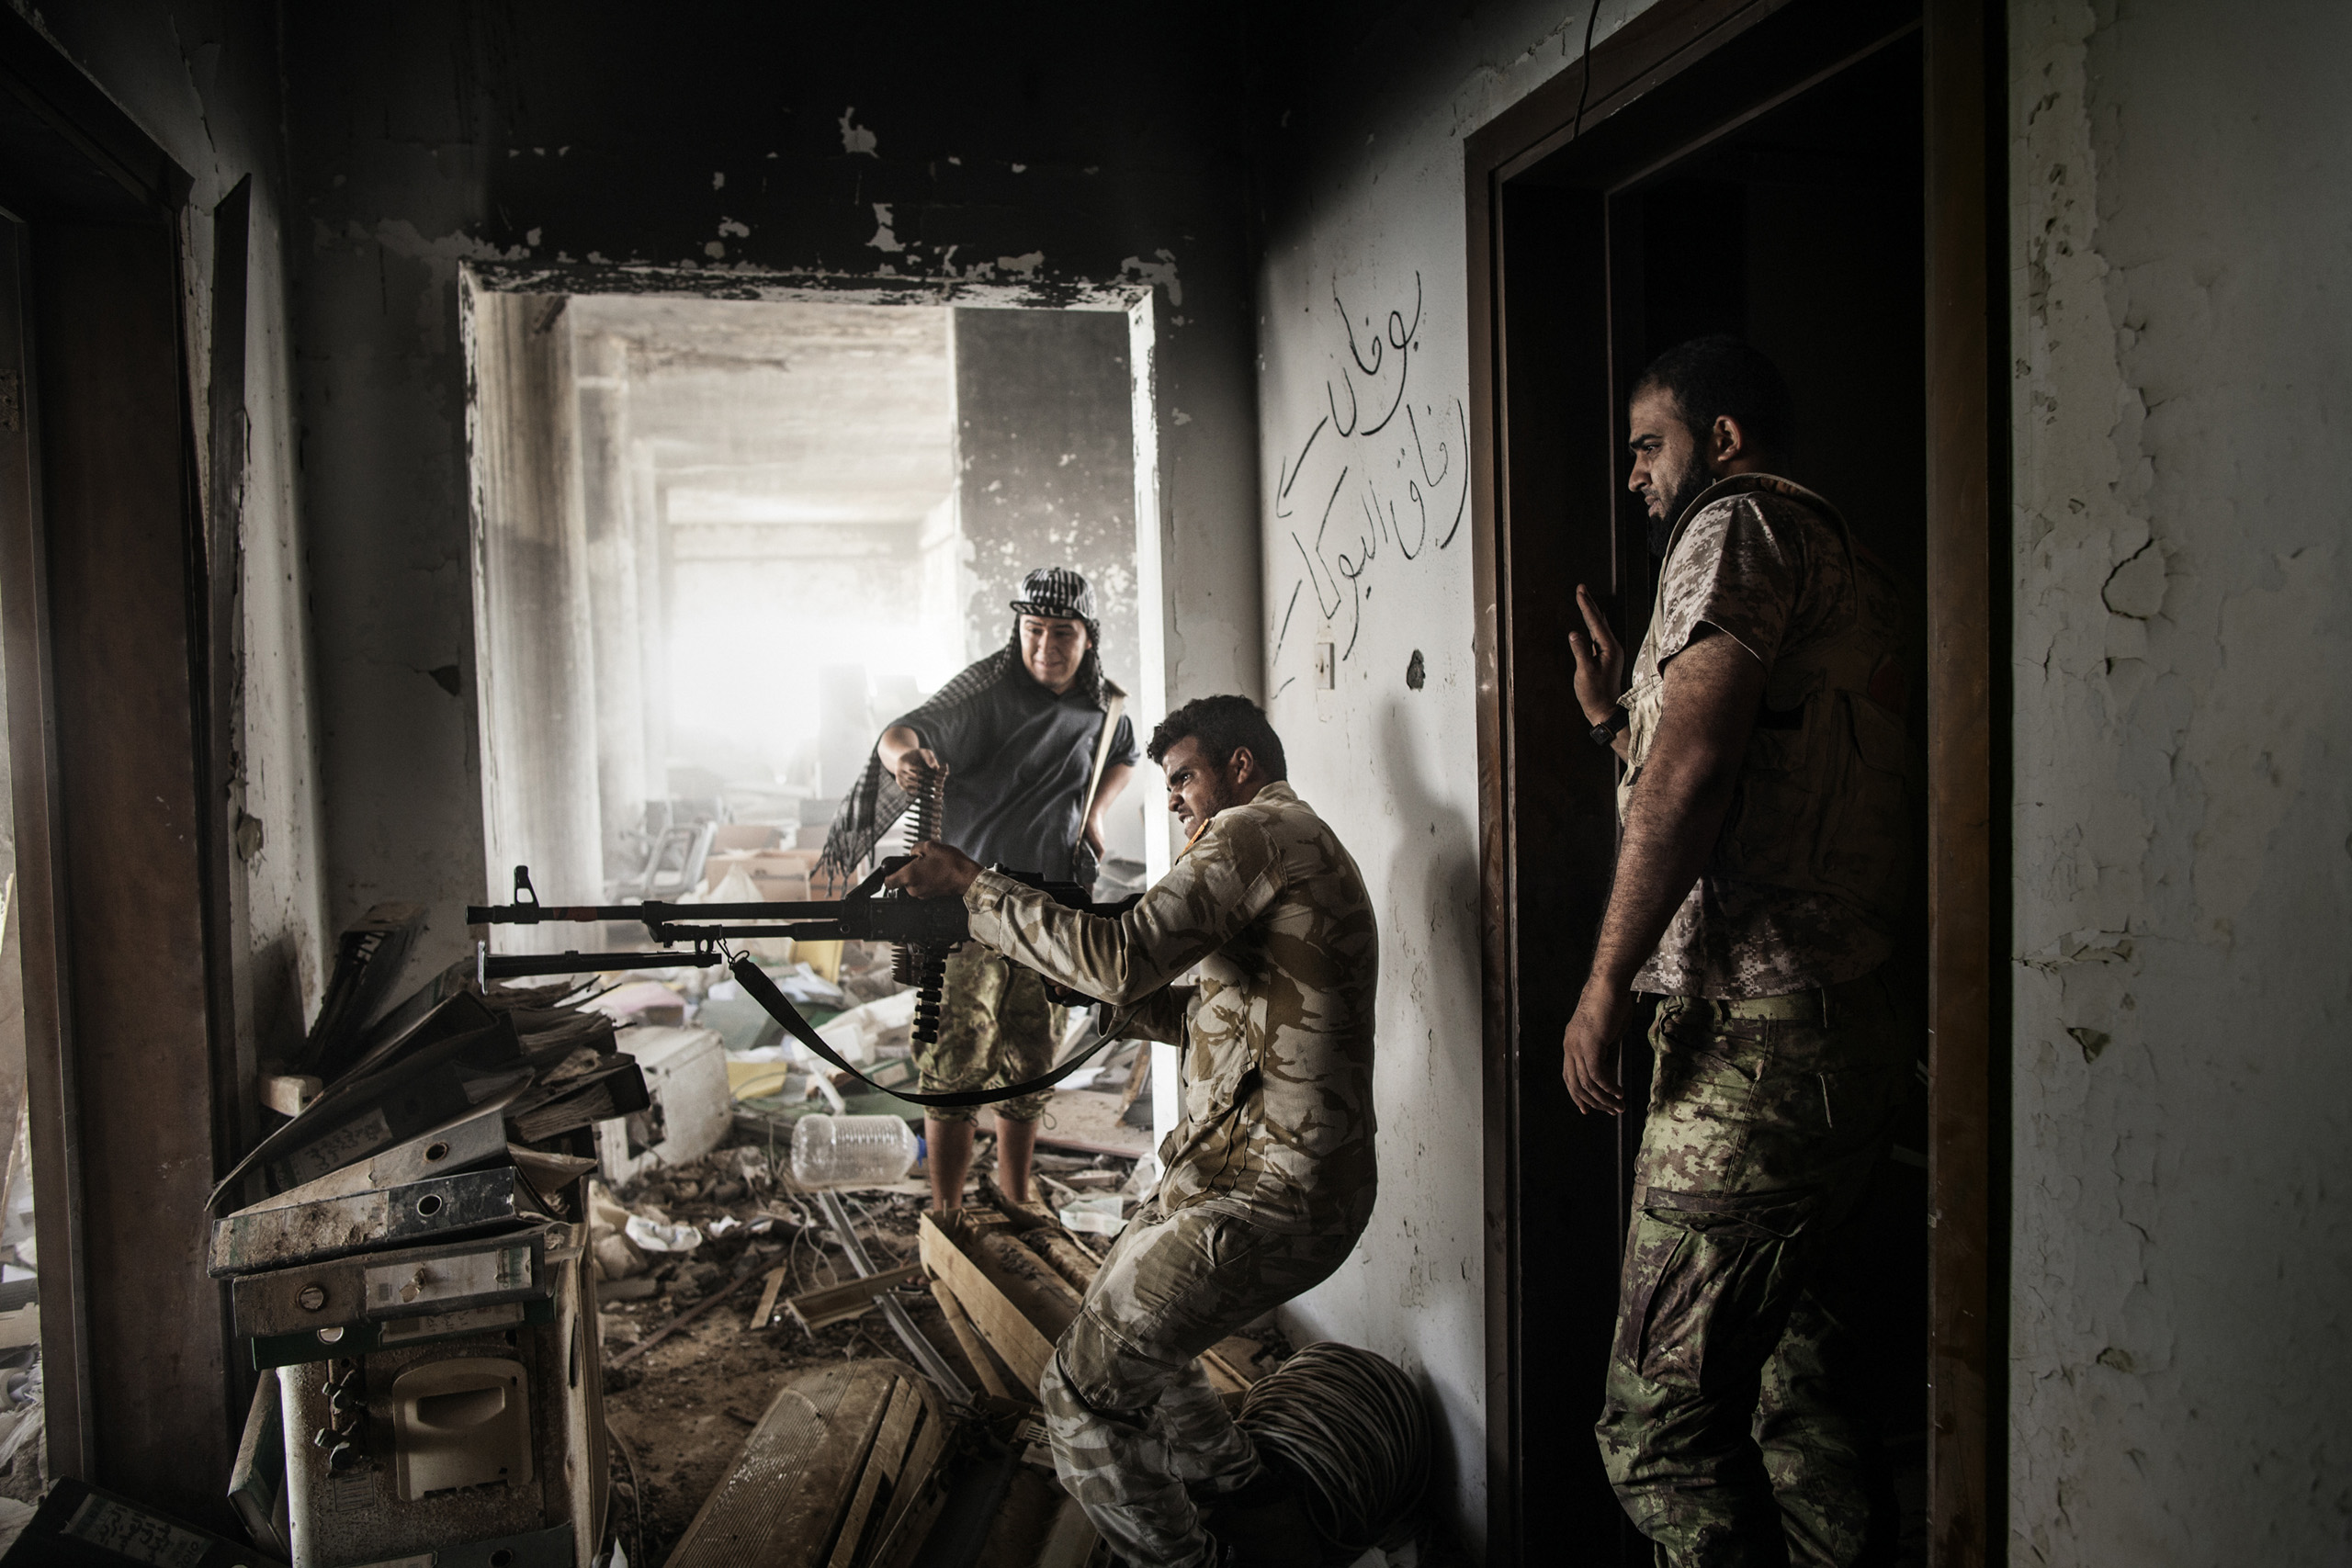 A Libyan fighter affiliated with the Tripoli government fires his weapon towards ISIS positions in Sirte, Libya, Sept. 22, 2016.